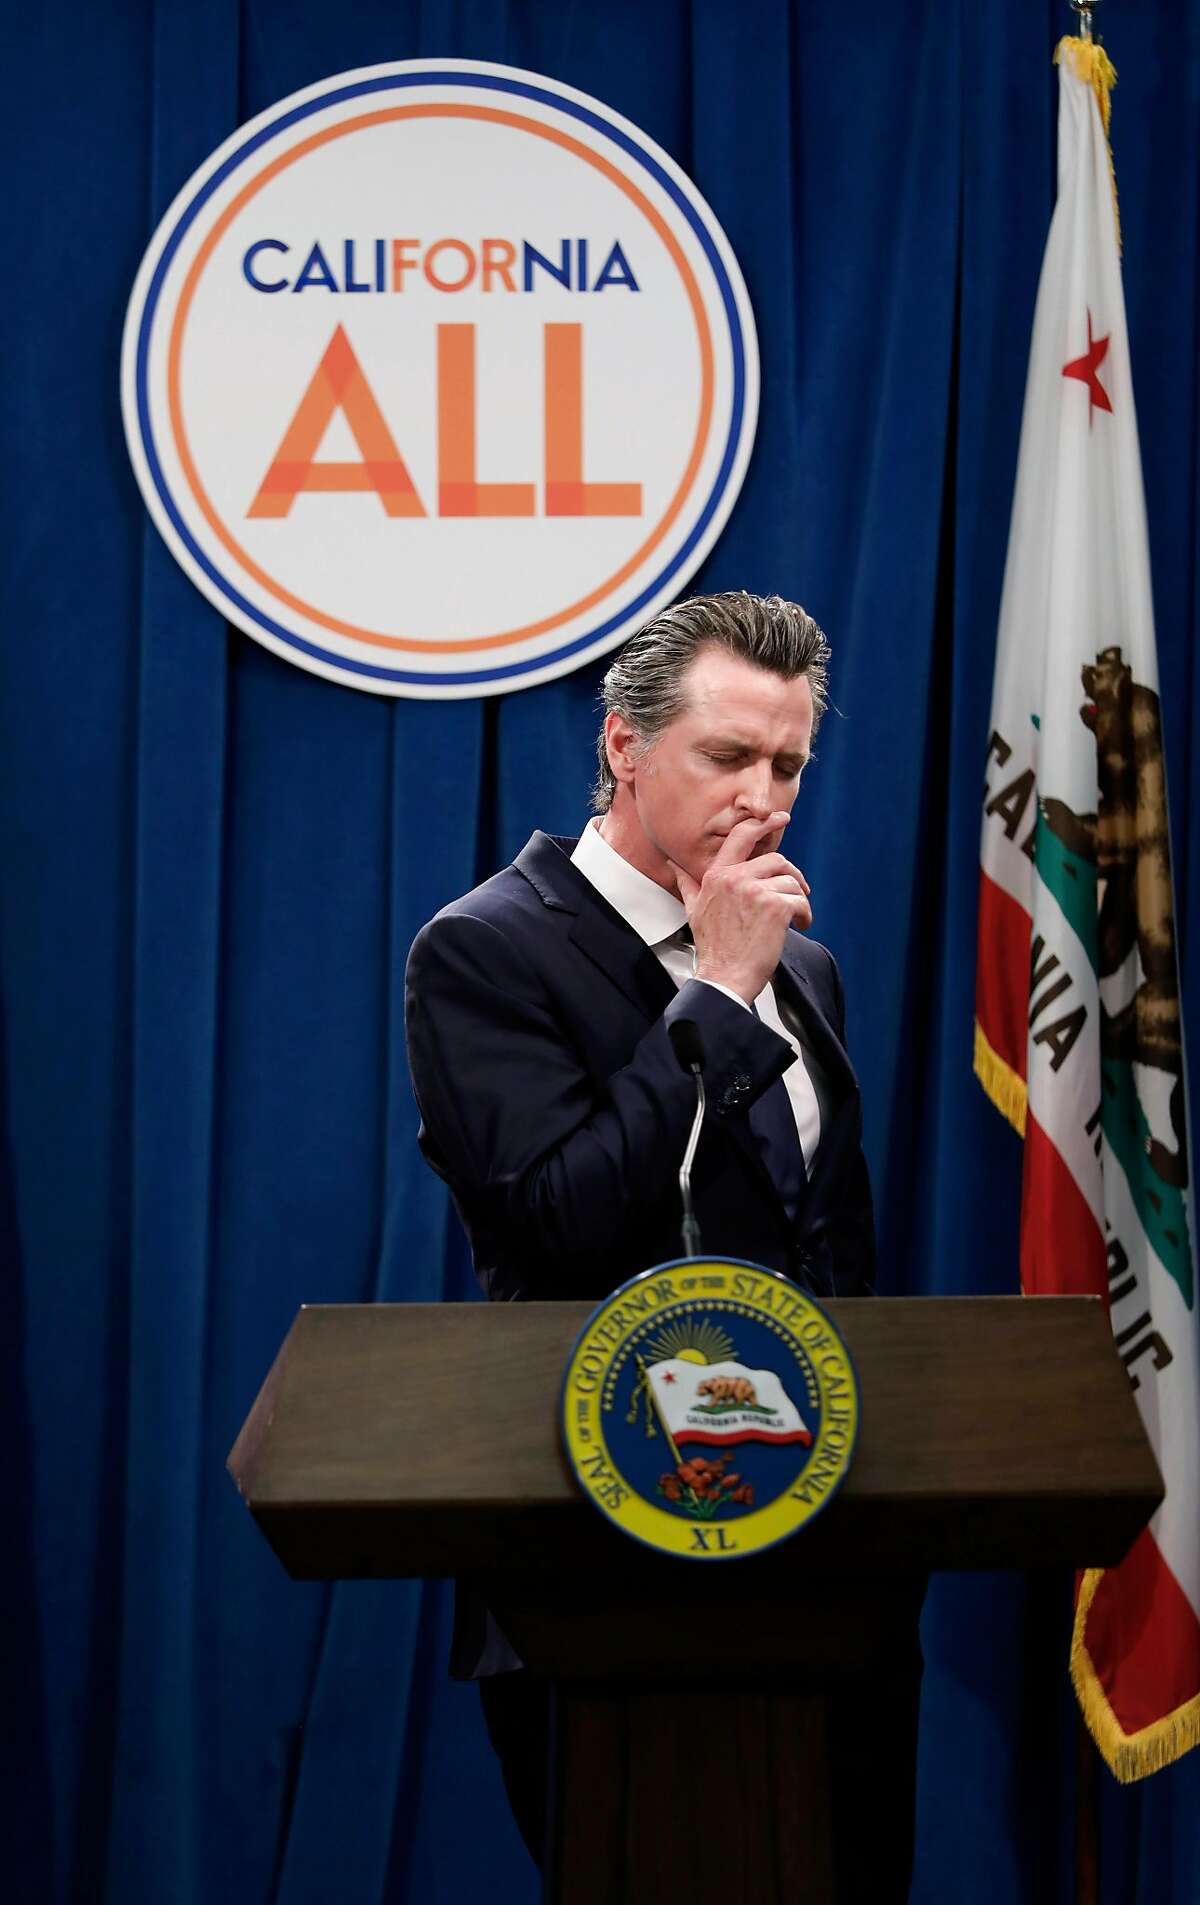 California Governor Gavin Newsom stops during a question from the media, as he releases details of his revised state budget for fiscal 2019-2020 during a press conference at the State Capitol on Thursday. May 09, 2019, in Sacramento, Ca.